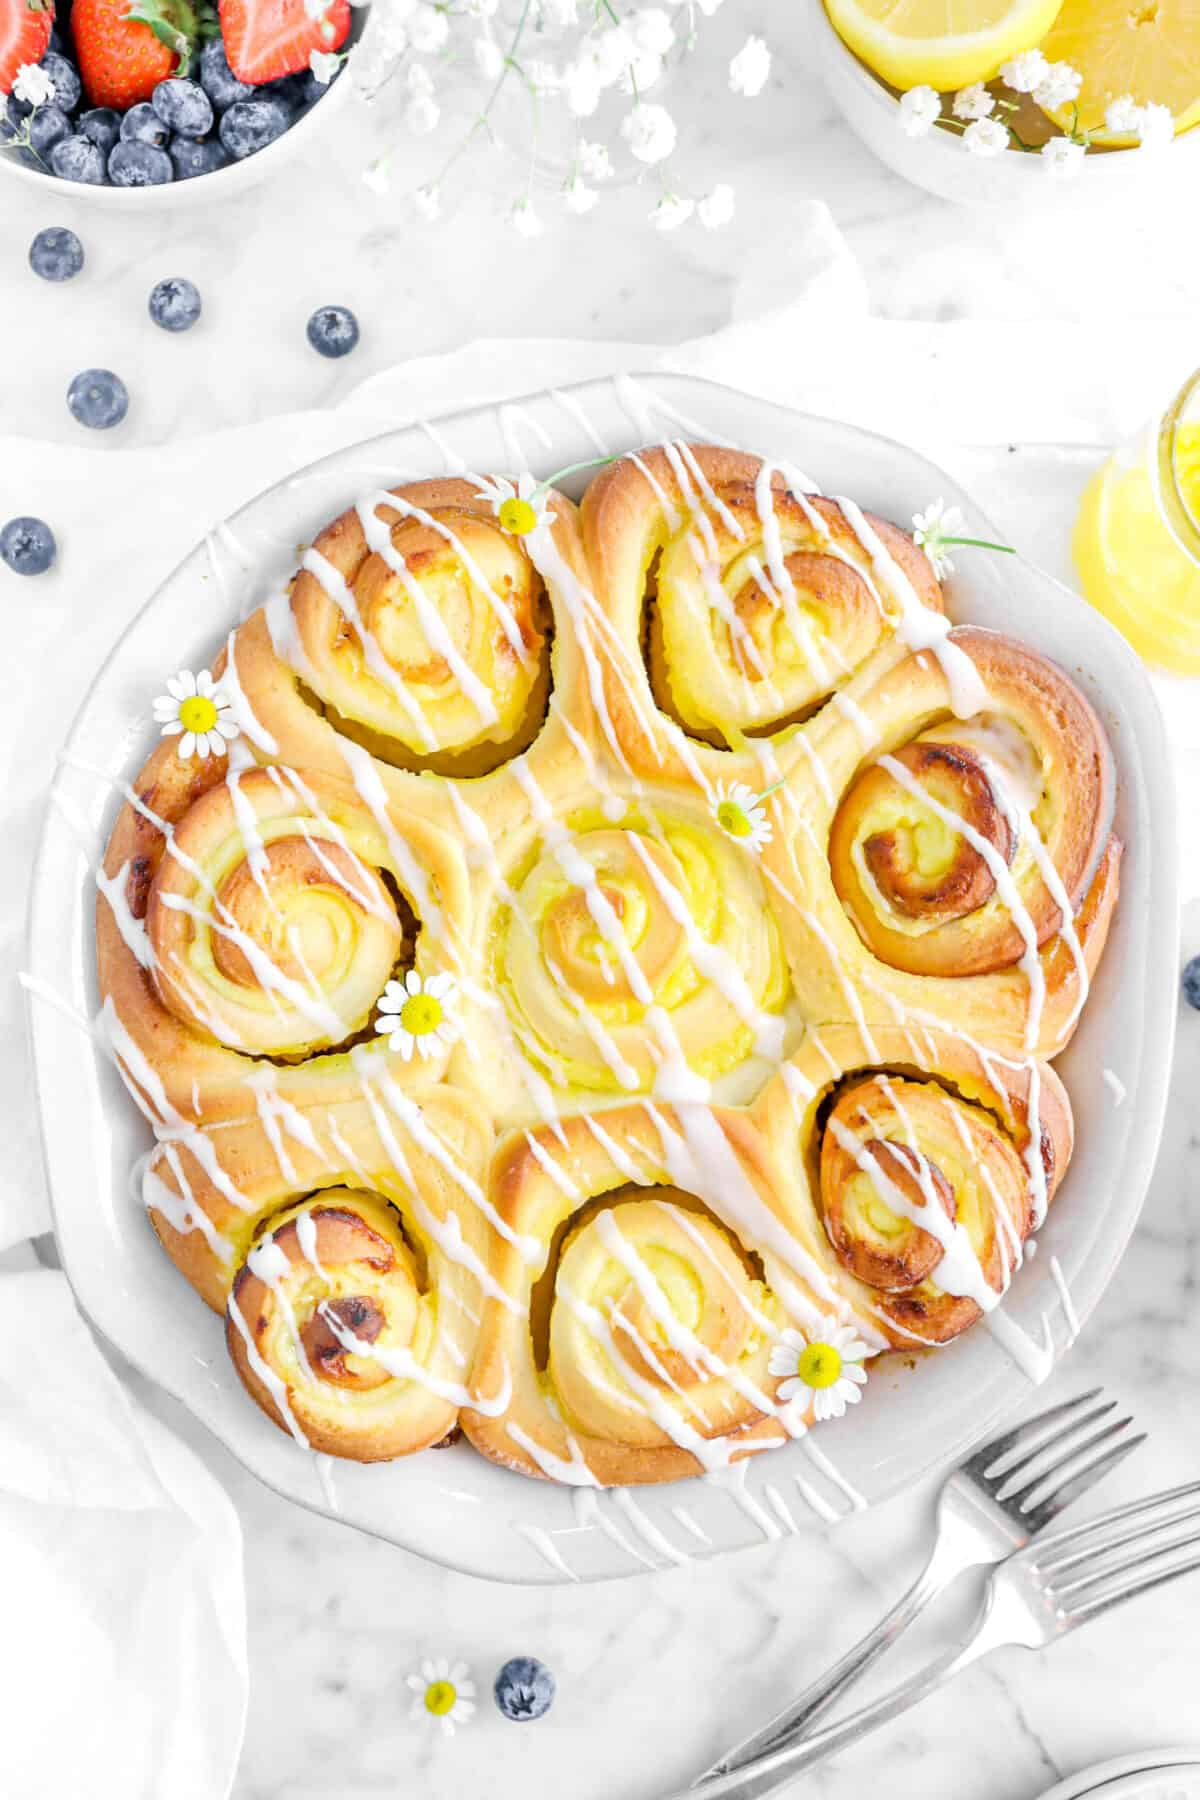 close up overhead shot of lemon rolls with blueberries, flowers, and forks